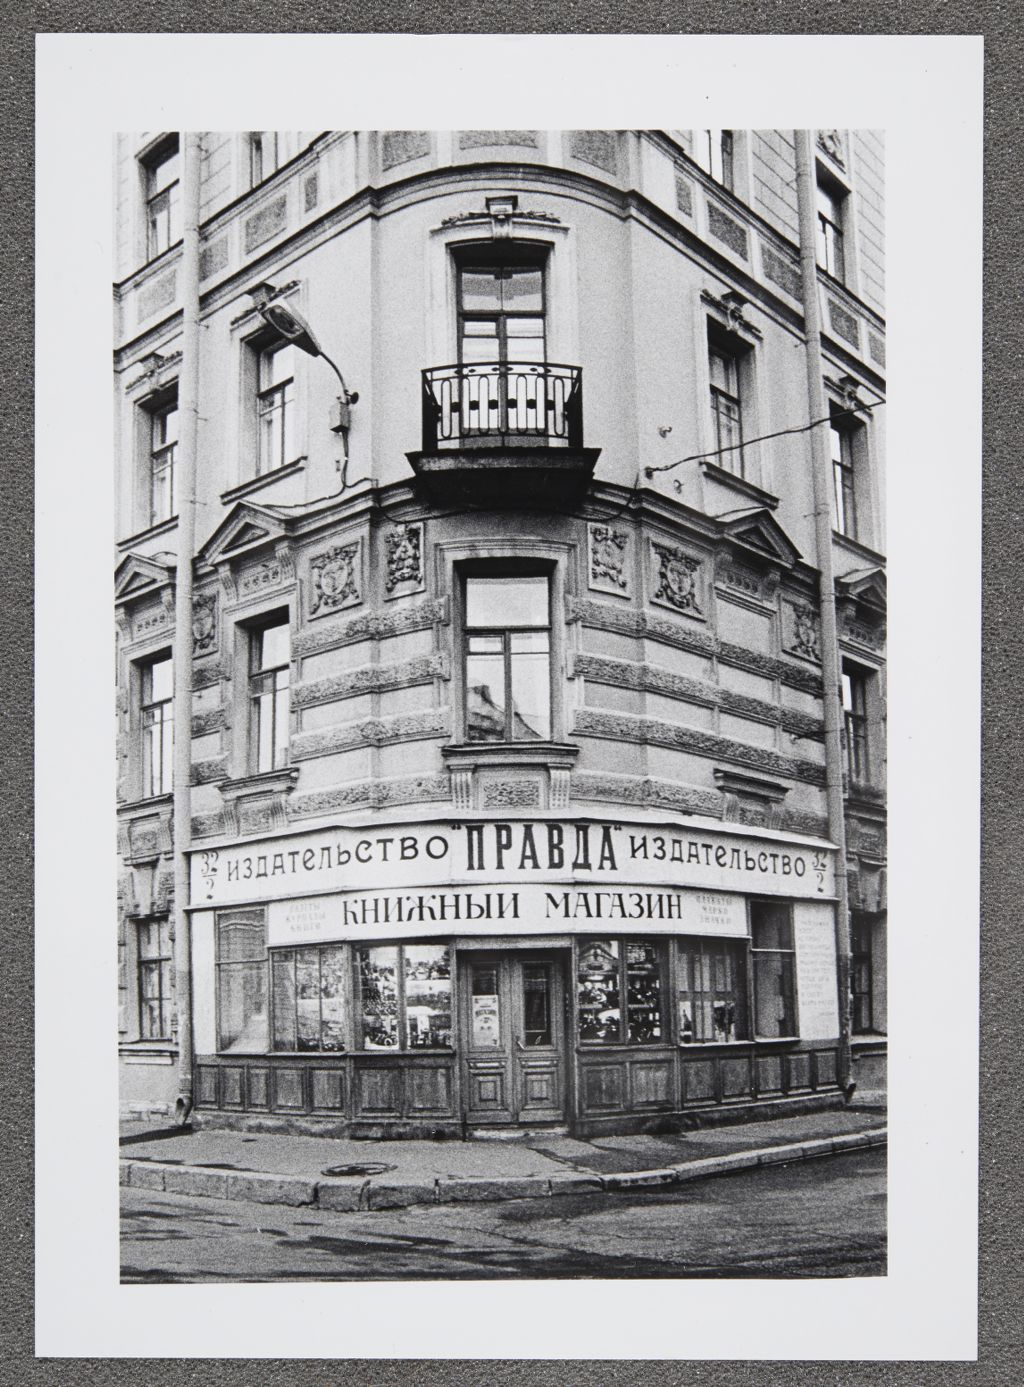 [View of corner of a building, Soviet Union]